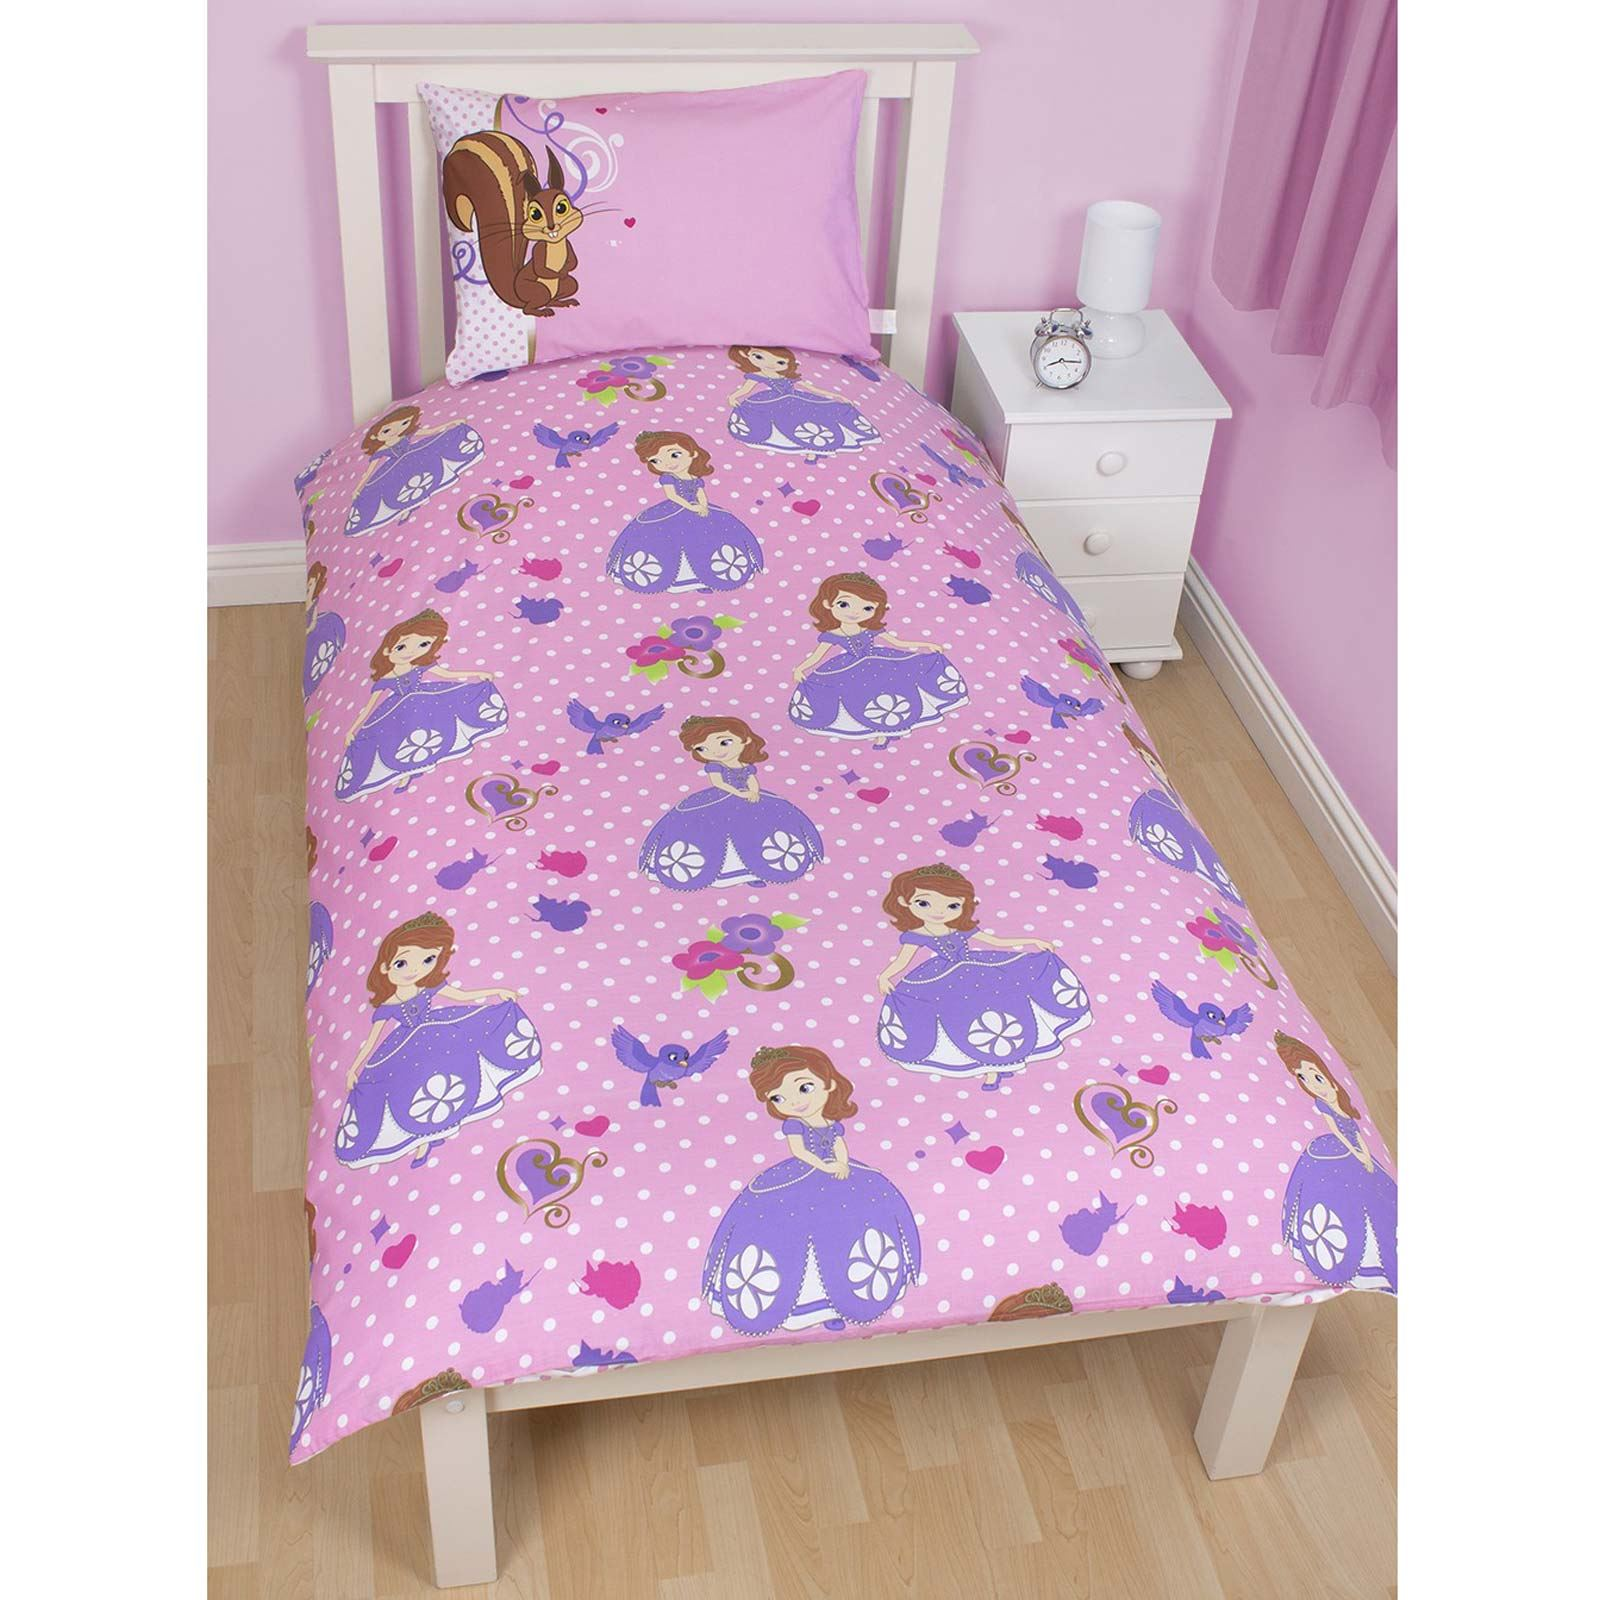 Disney Sofia The First Bedding And Bedroom Accessories